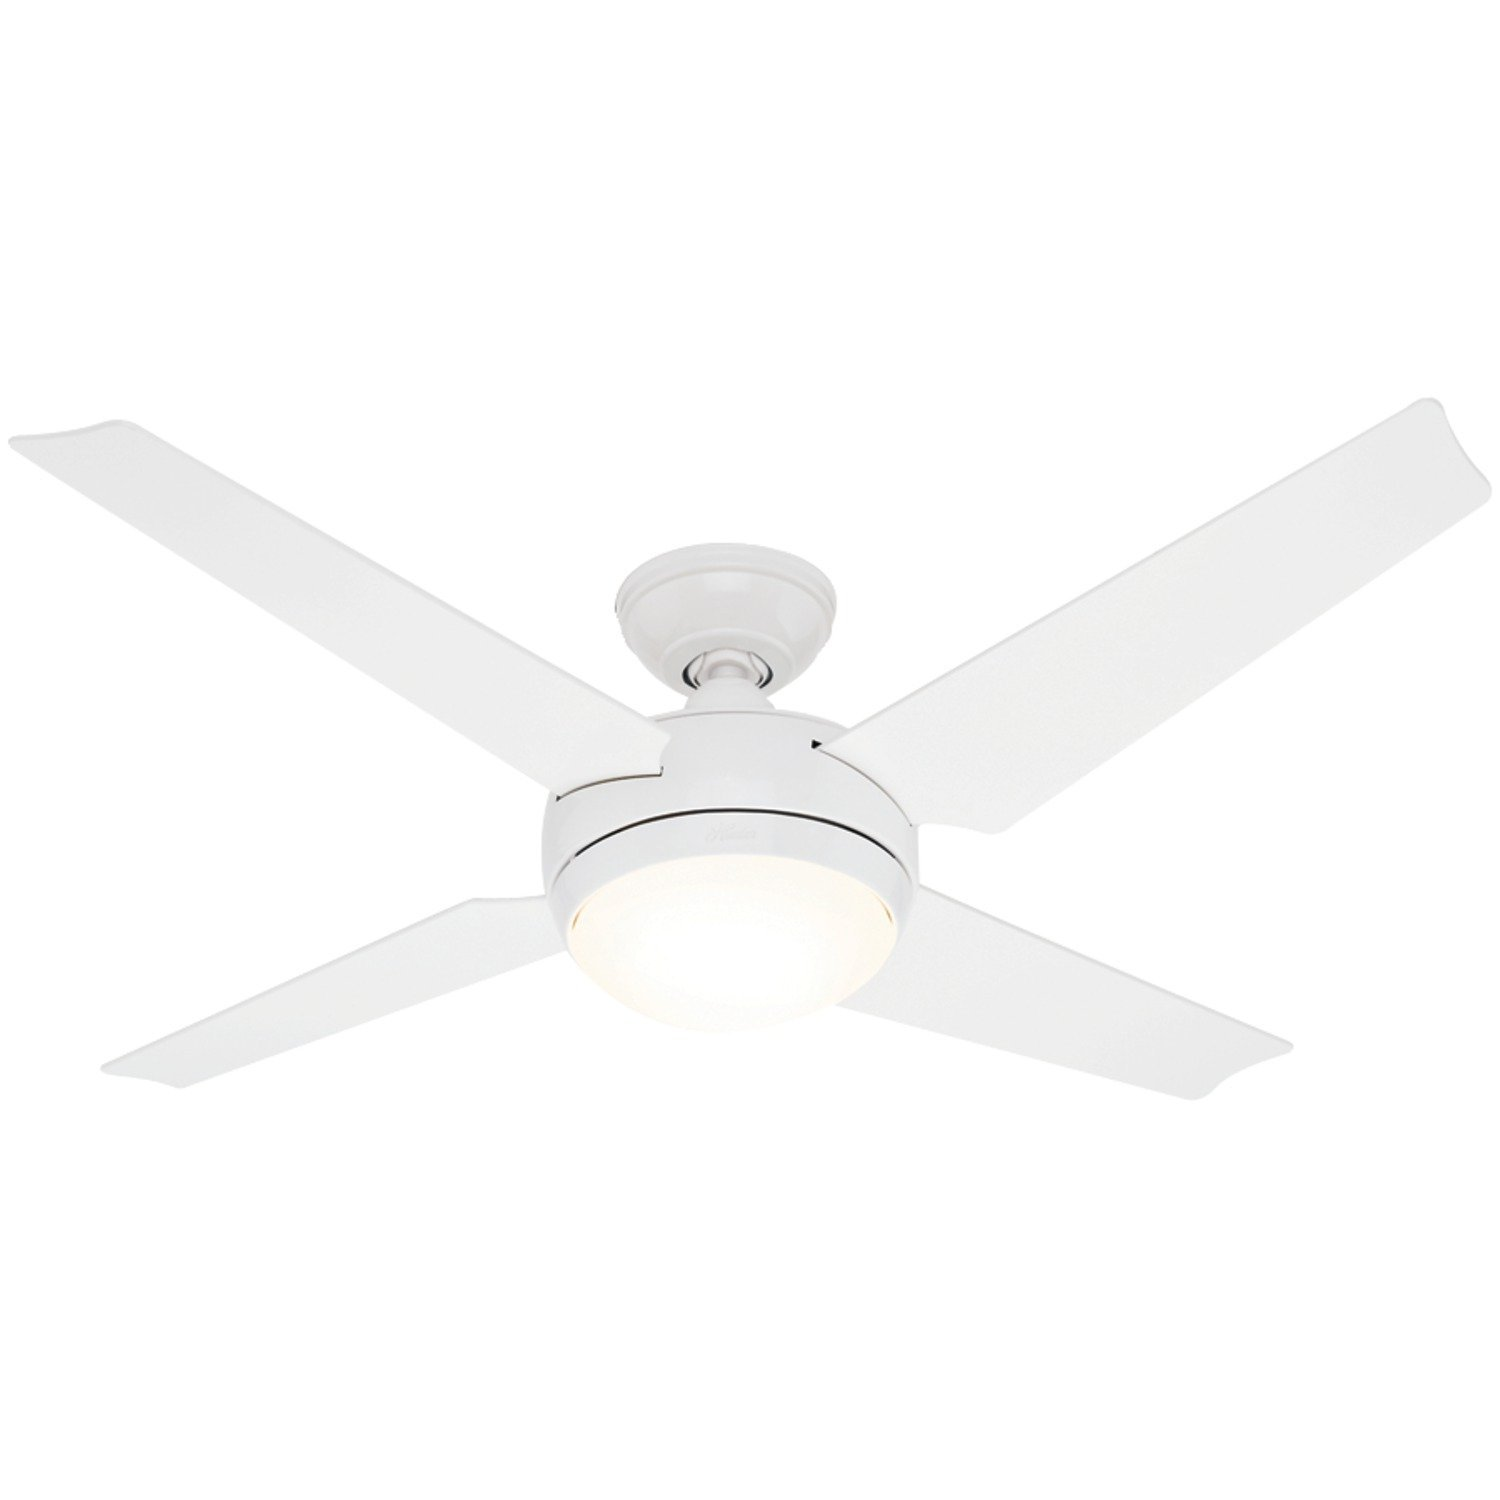 Selecting the right white ceiling fan light for you warisan lighting selecting the right white ceiling fan light for you mozeypictures Image collections